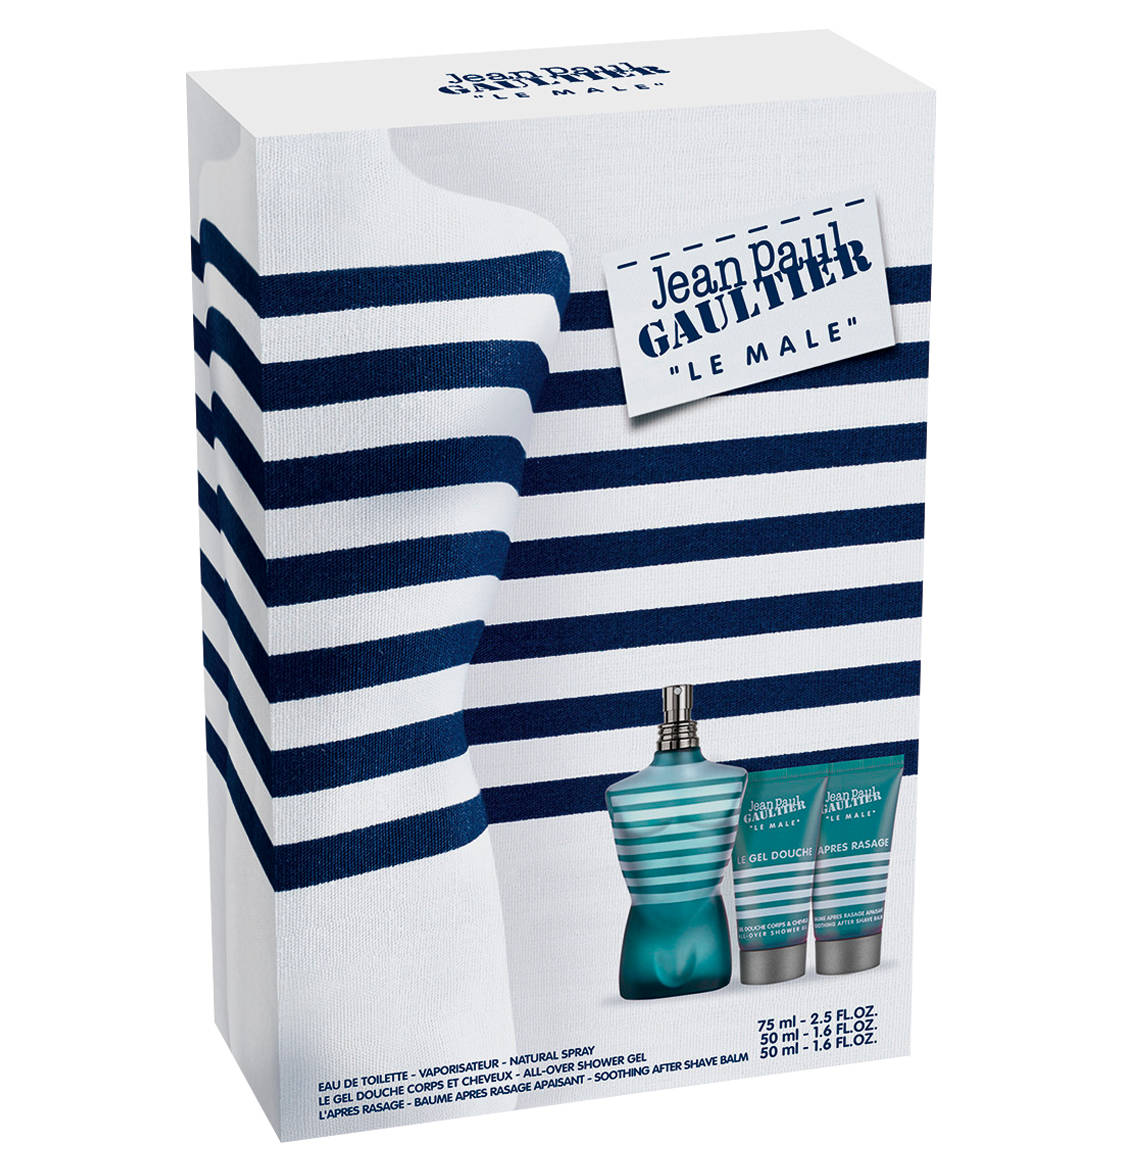 JEAN PAUL GAULTIER JPG LE MALE EDT 75 ML + GEL 50 ML + A/S BALM 50 ML SET REGALO